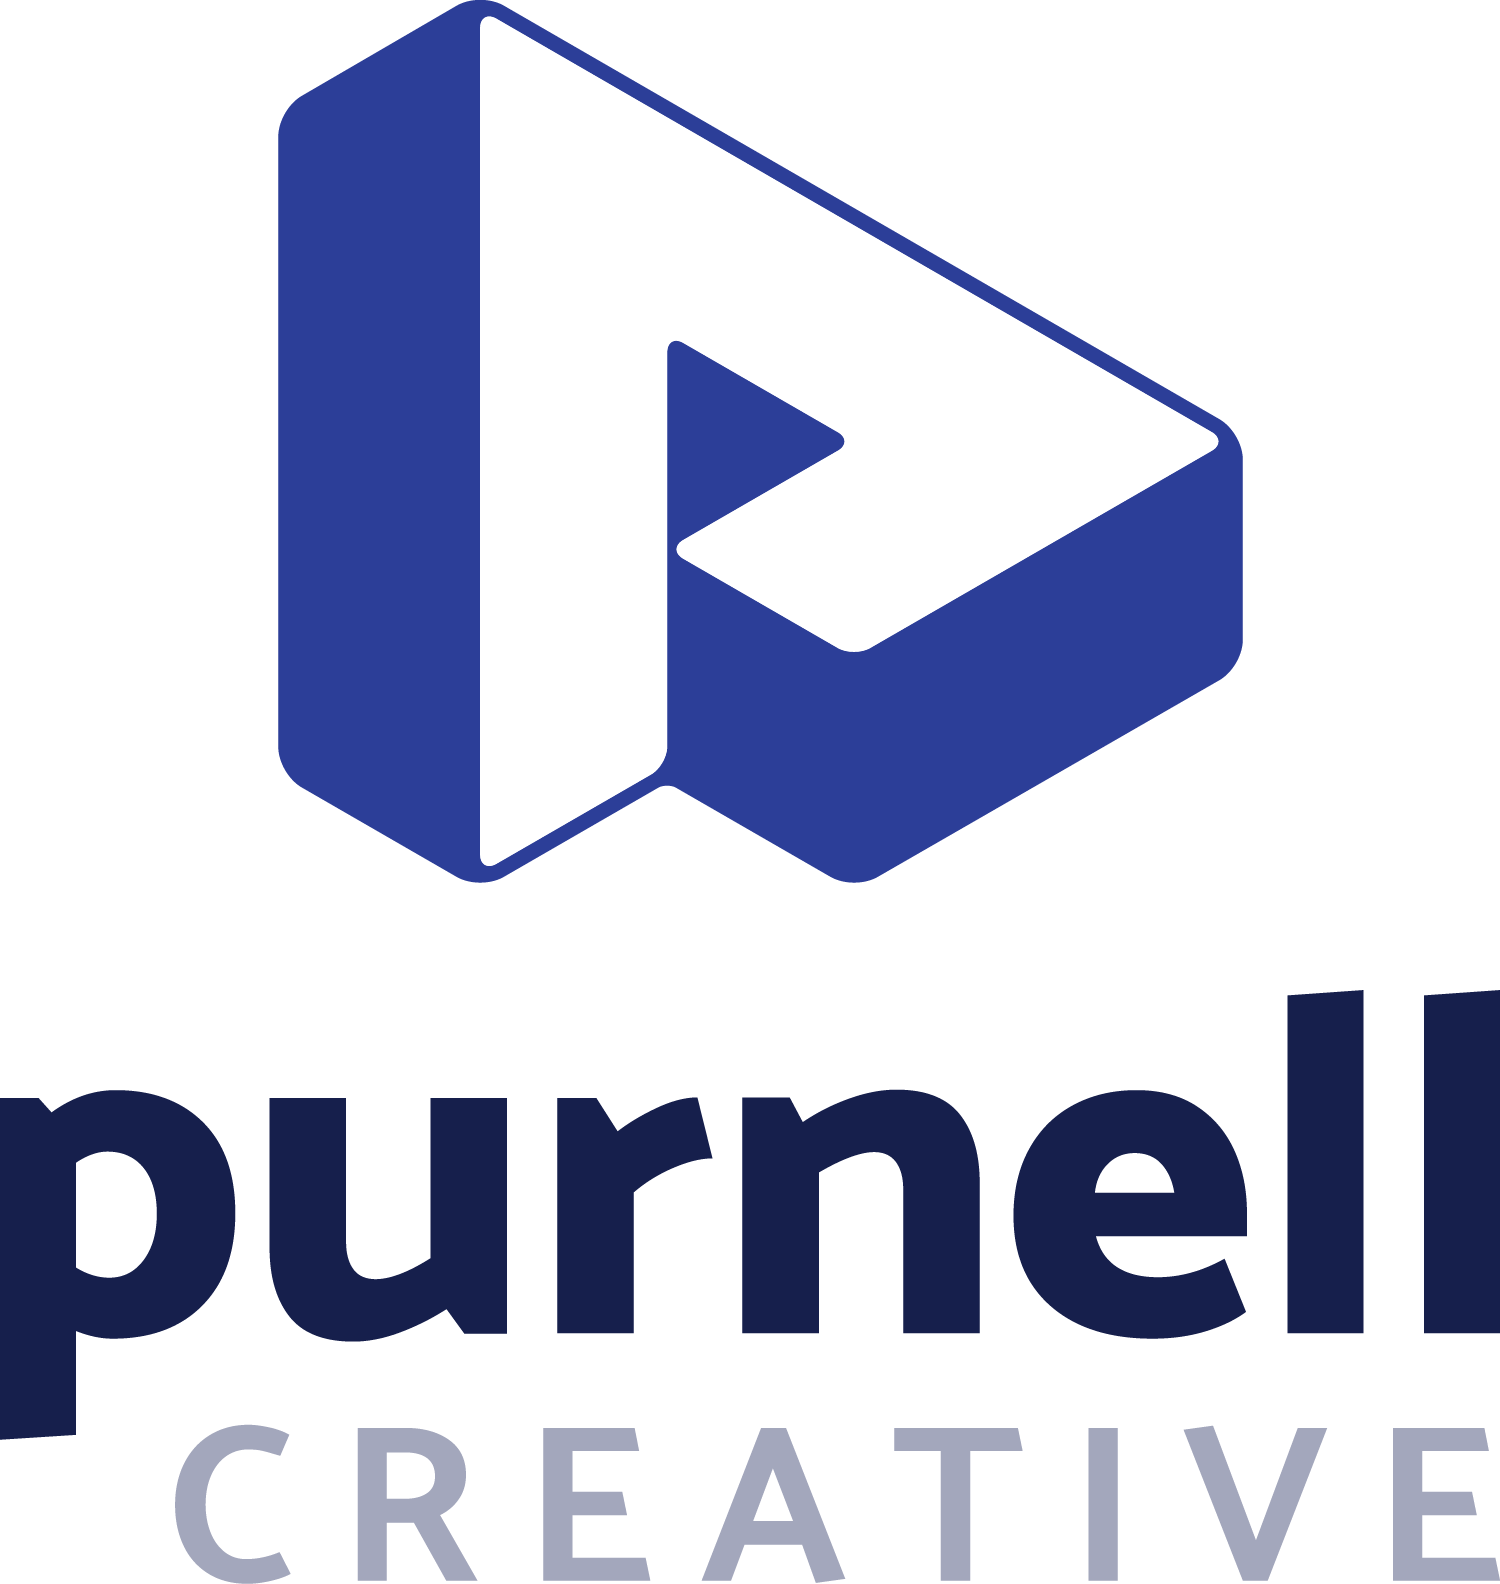 Purnell Creative